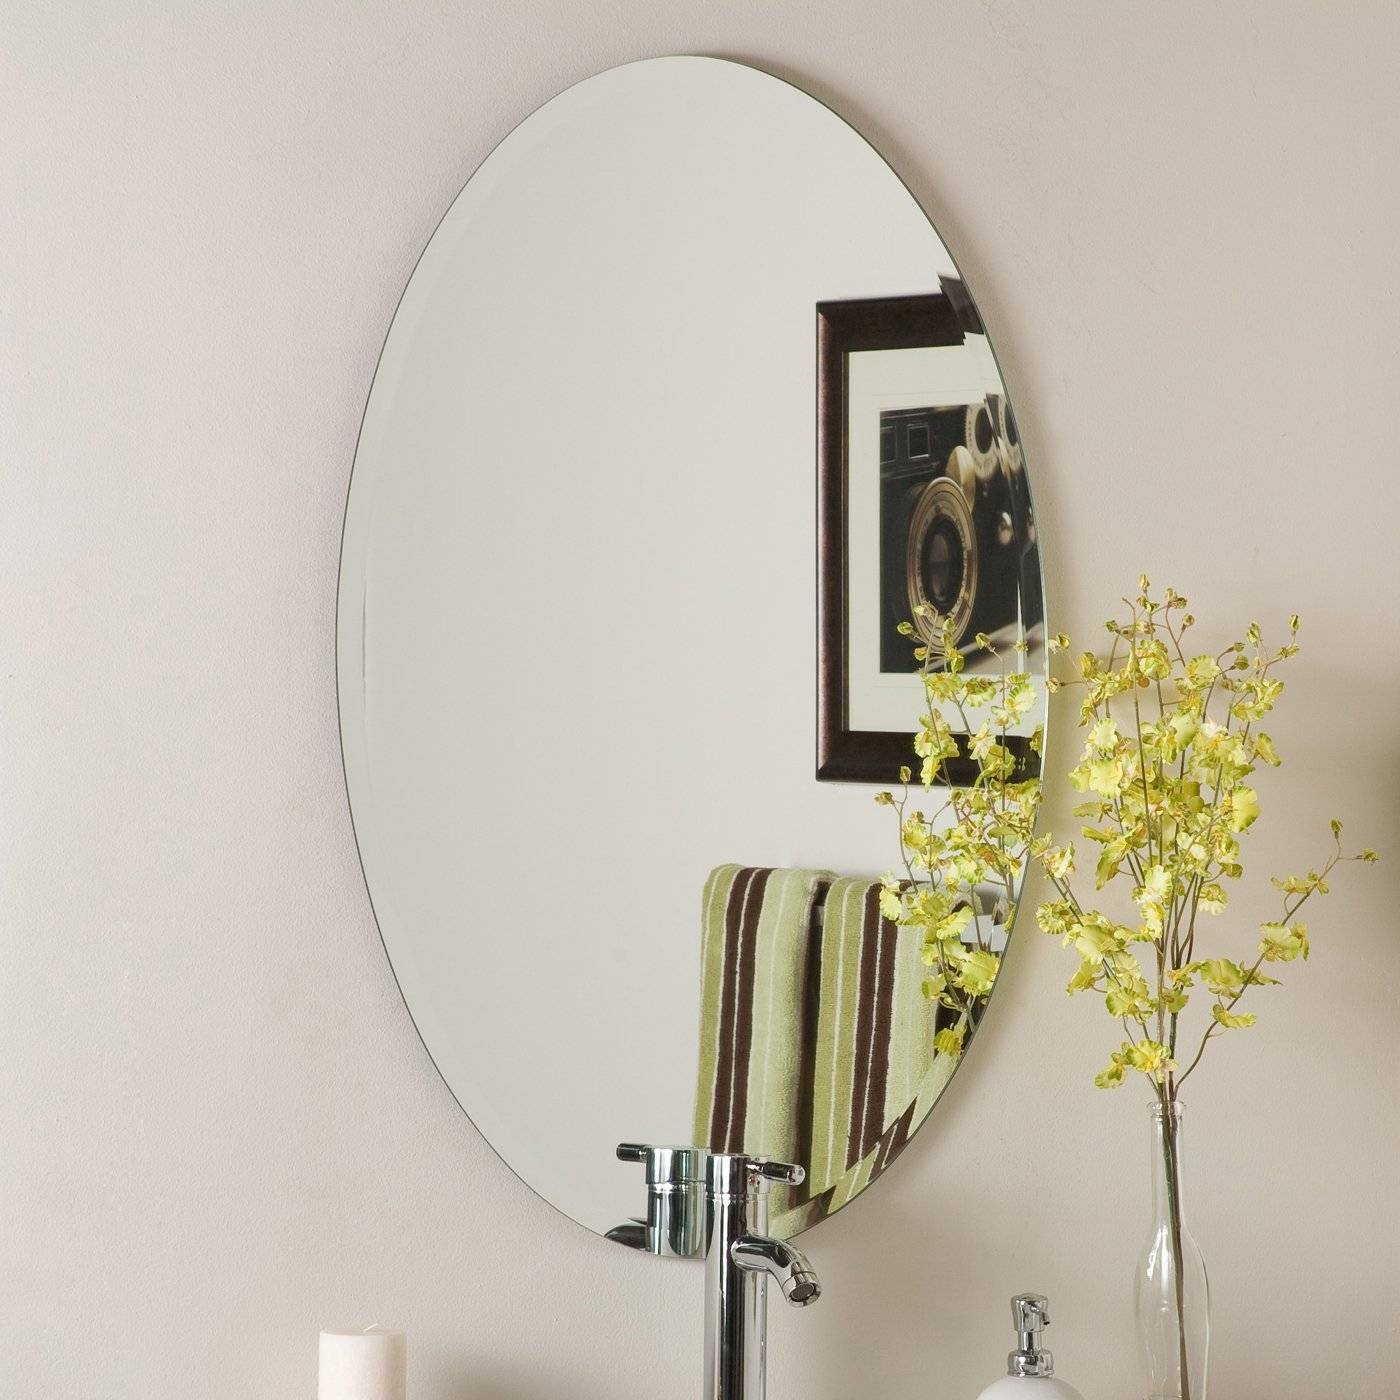 Decor Wonderland Ssm202 Frameless Oval Beveled Mirror | Lowe's Canada pertaining to Oval Bevelled Mirrors (Image 3 of 15)